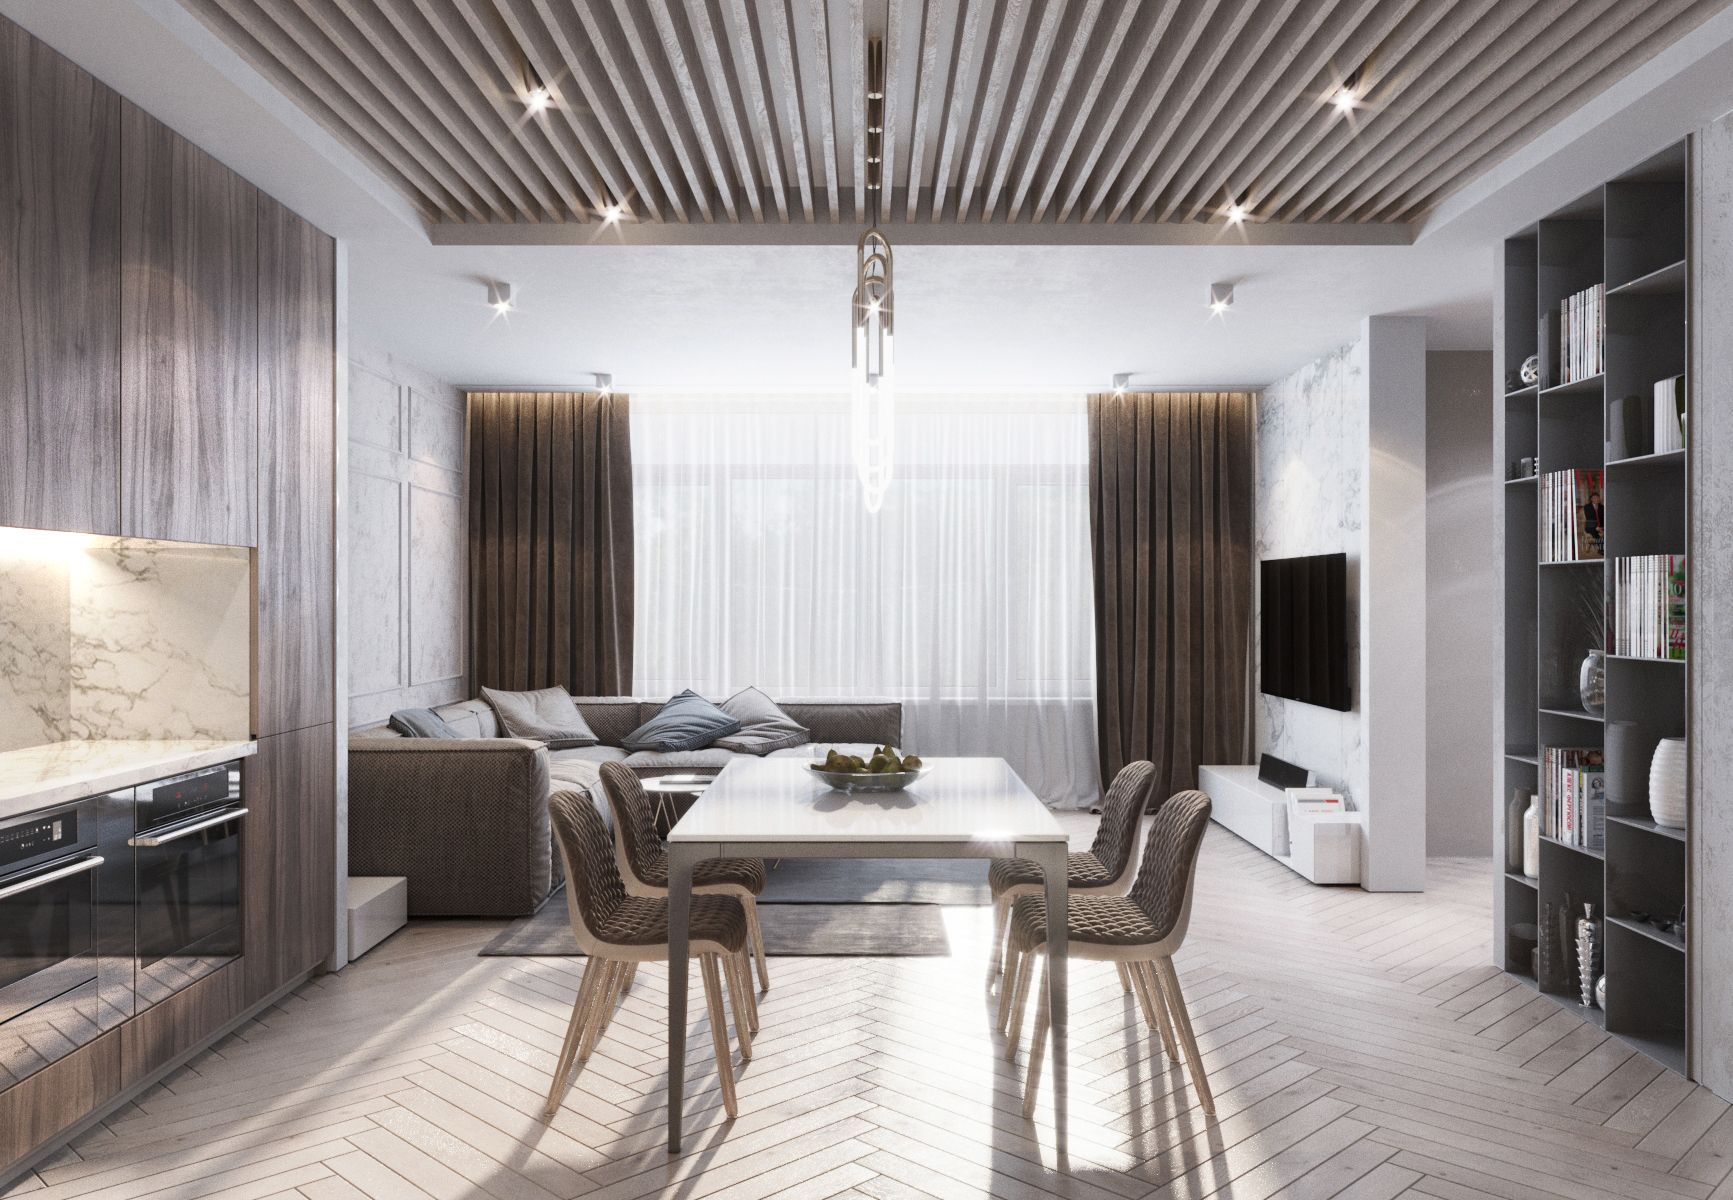 Living room with kitchen: project, design. Interior of kitchen combined with living room 61